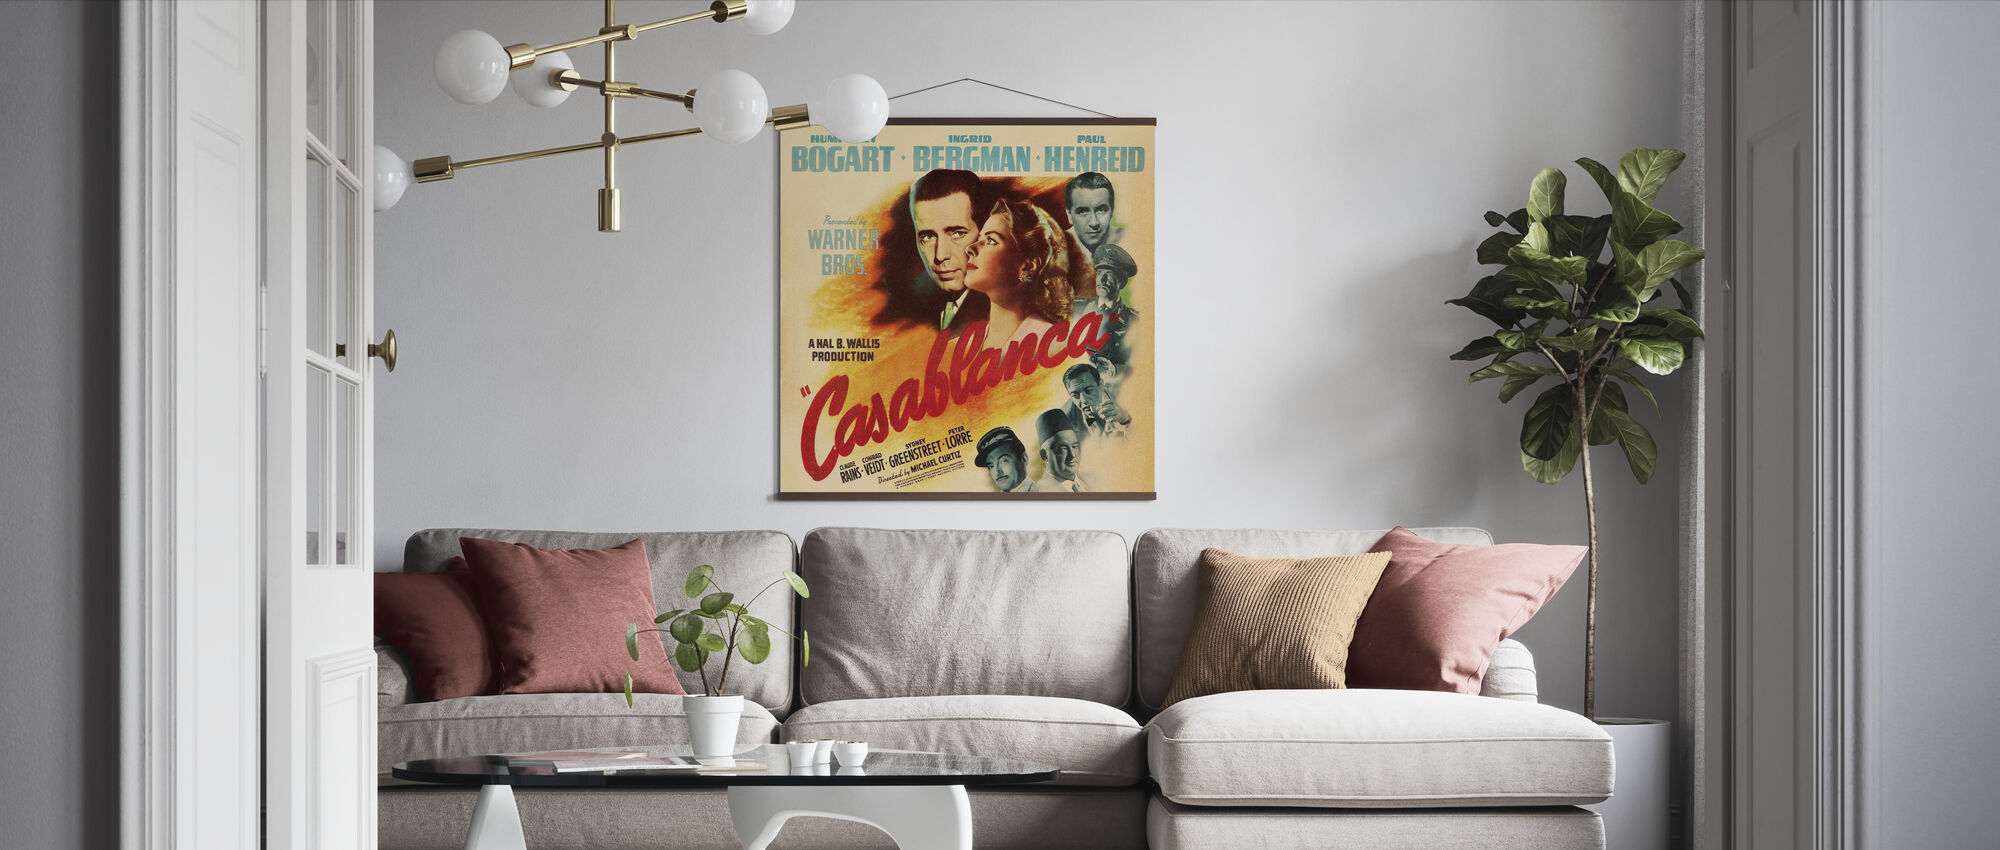 Movie Poster Casablanca - Poster - Living Room